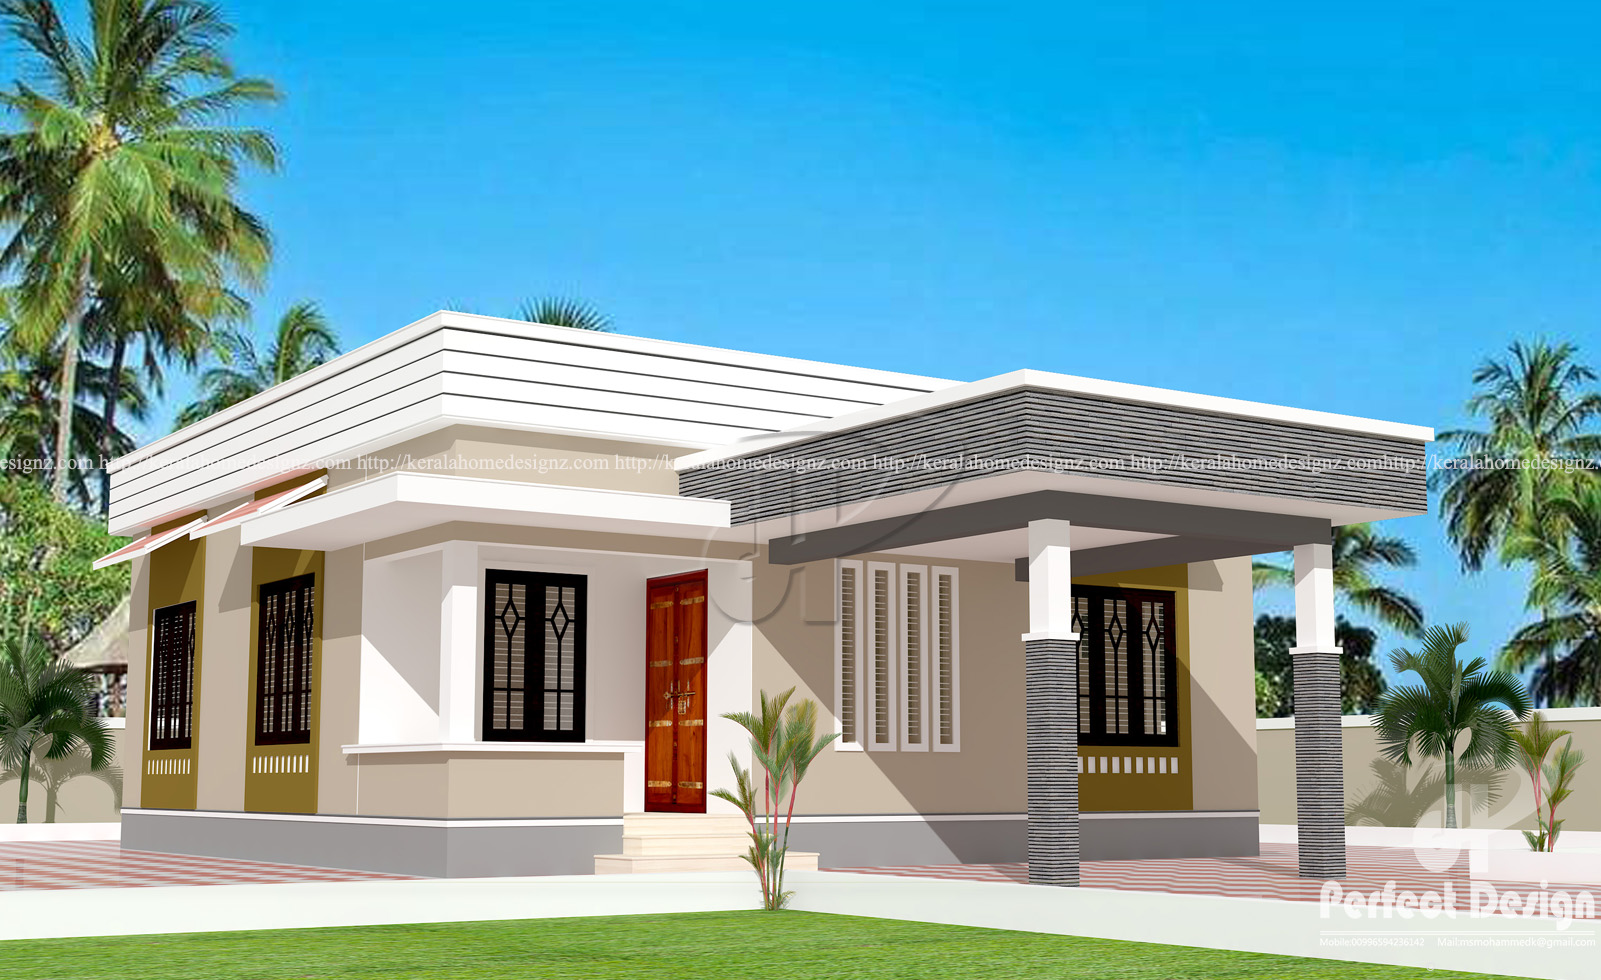 829 sq ft low cost home designs kerala home design for Designers homes